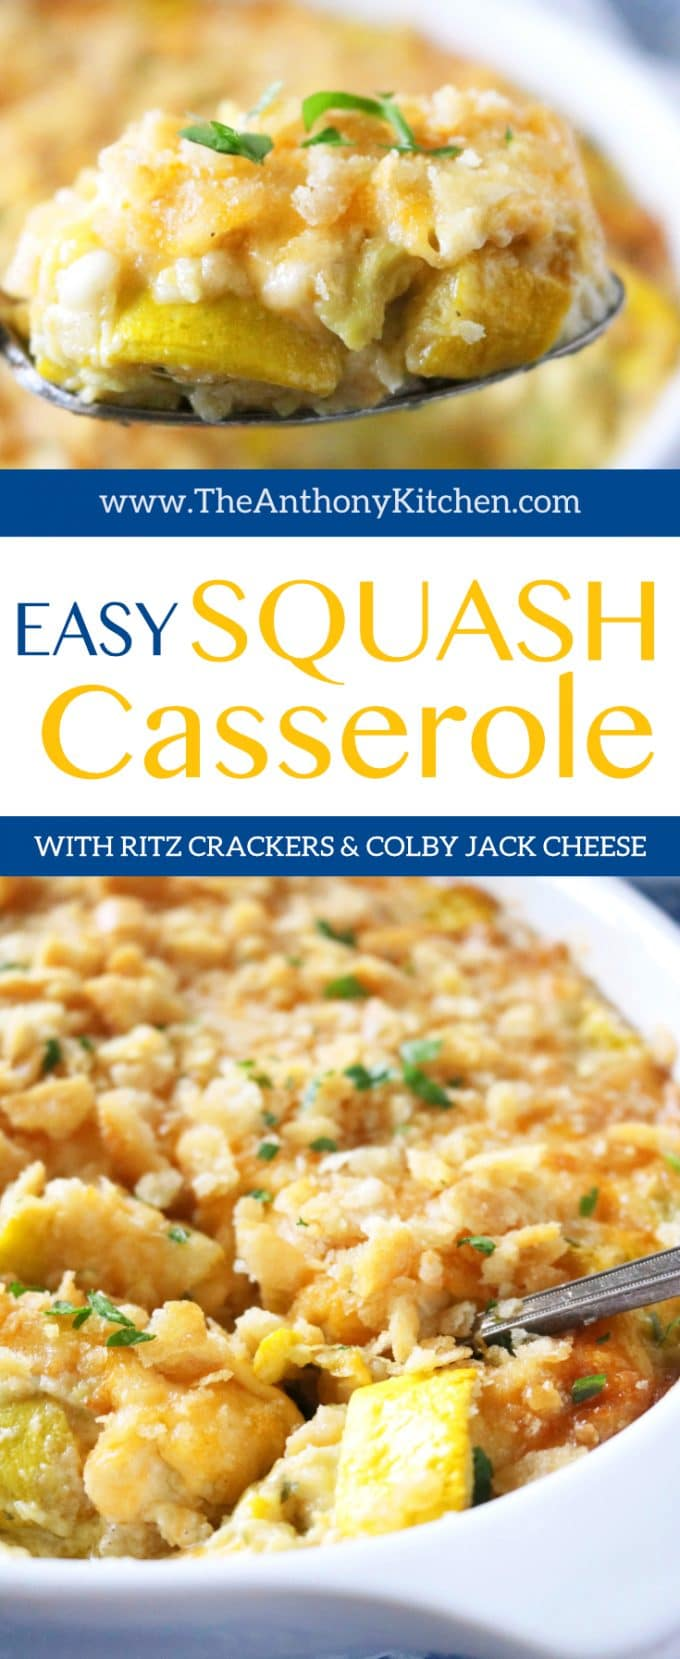 Easy Squash Casserole with Ritz Crackers